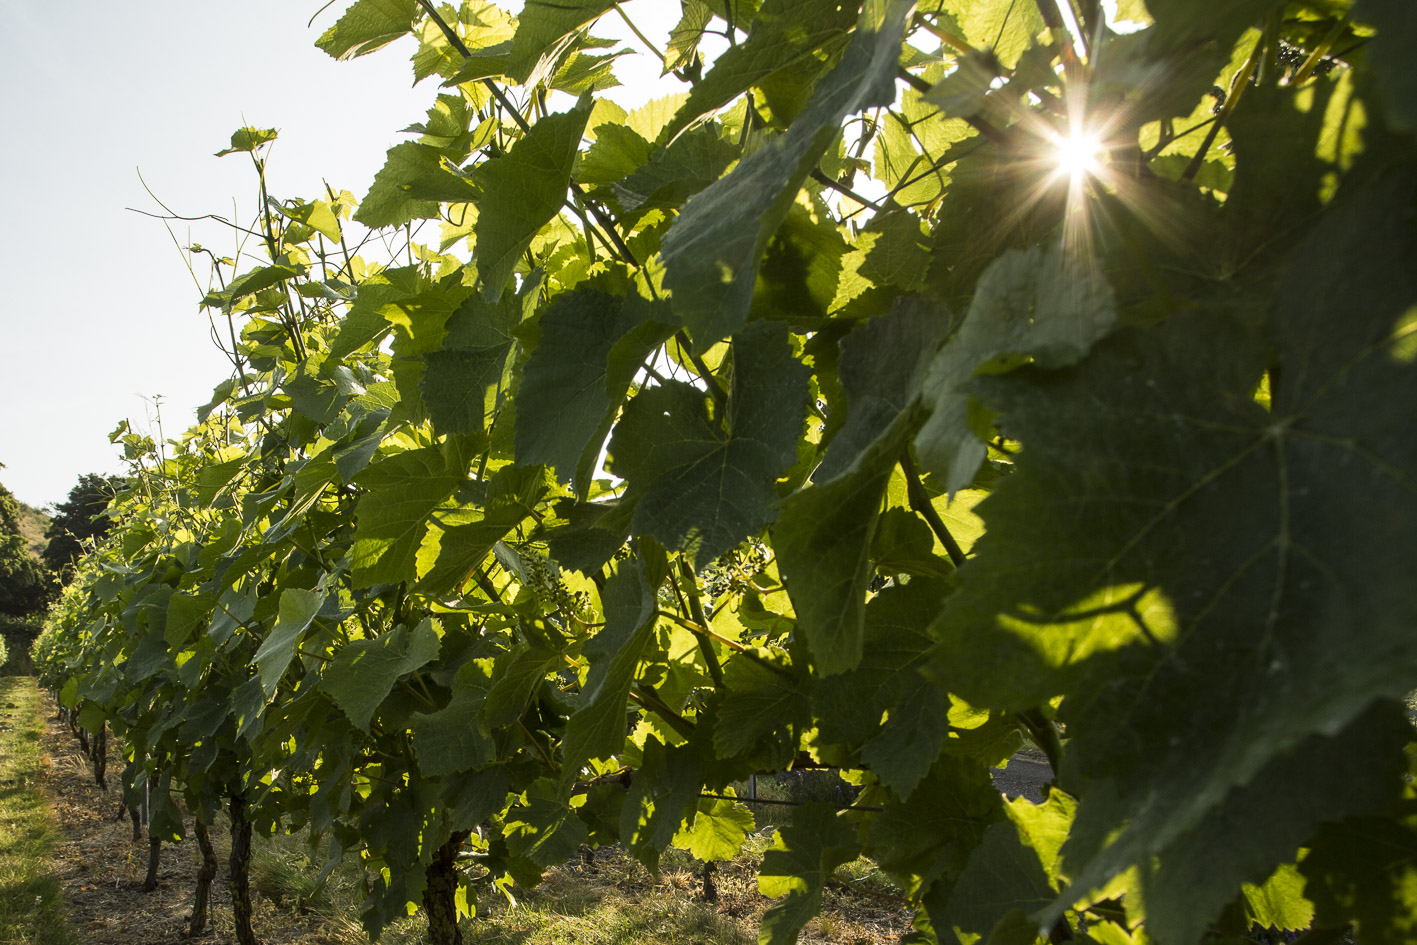 Sun through the vines